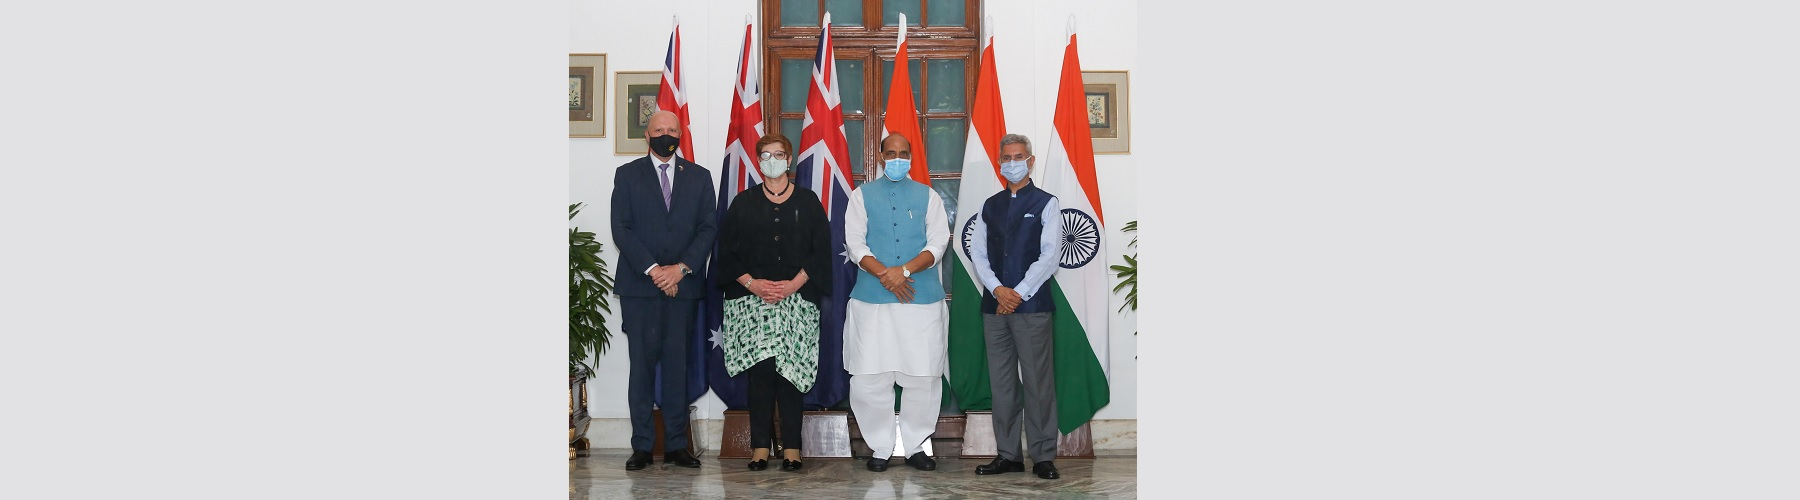 Raksha Mantri Shri Rajnath Singh and External Affairs Minister Dr S Jaishankar with Minister for Defence of Australia Mr Peter Dutton and Minister for Foreign Affairs of Australia Ms Marise Payne before the inaugural 2 plus 2 Ministerial level meeting bet